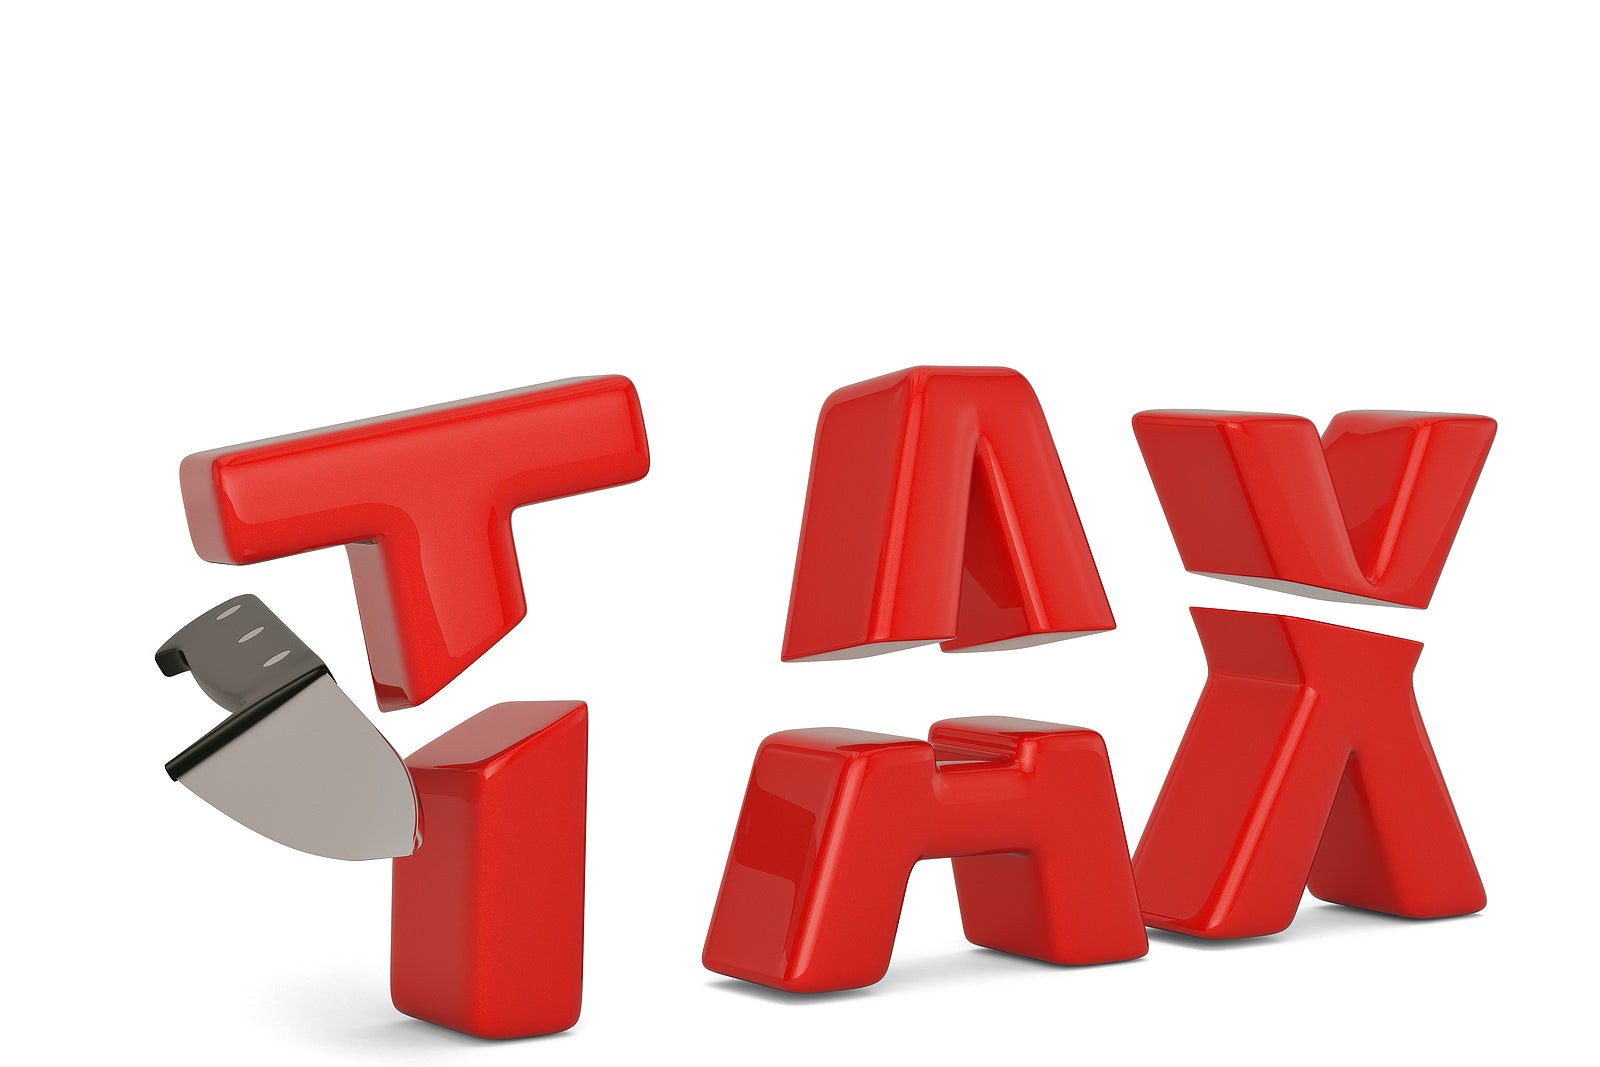 [Pakistan] Government will lower tax for expats